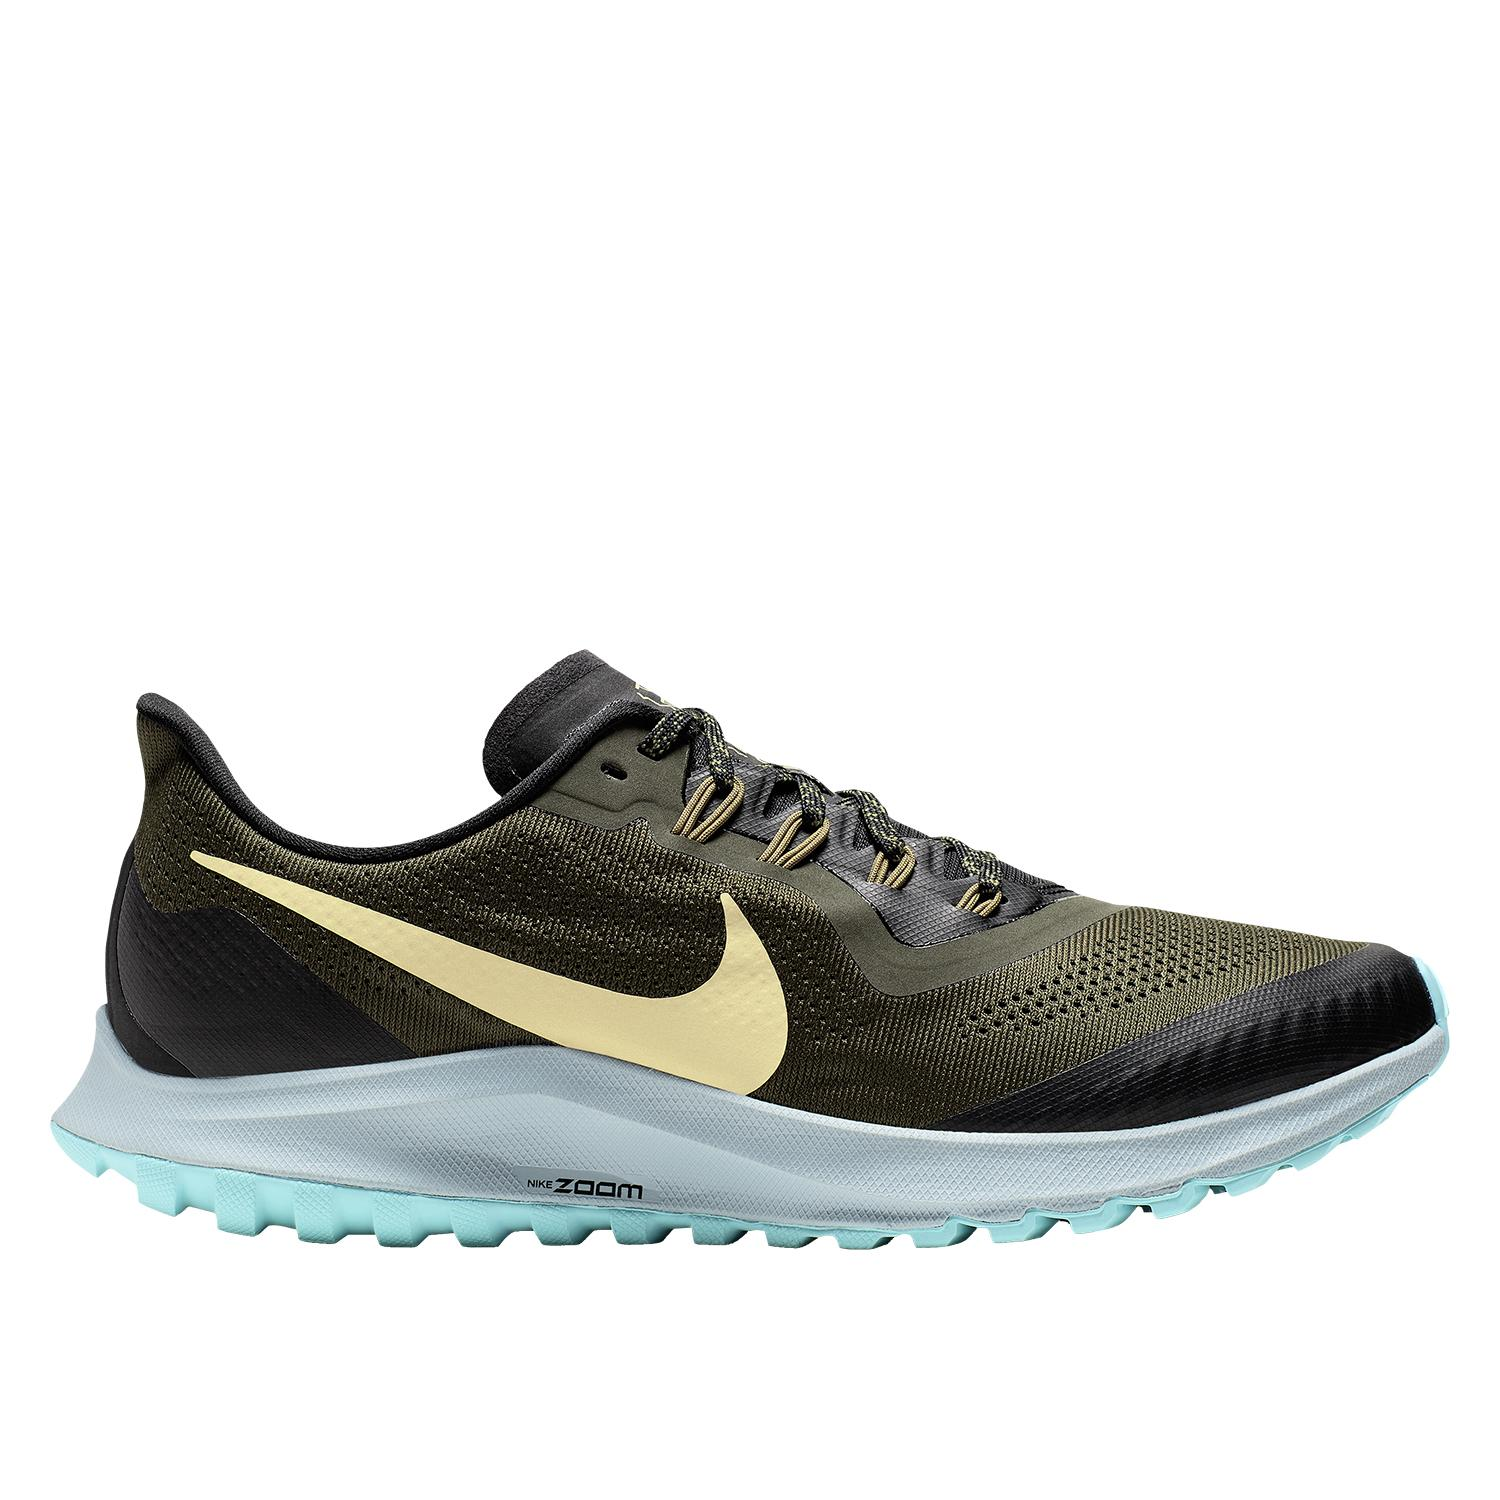 release date 83d74 ce848 Nike Air Zoom Pegasus 36 Men's Trail Shoe